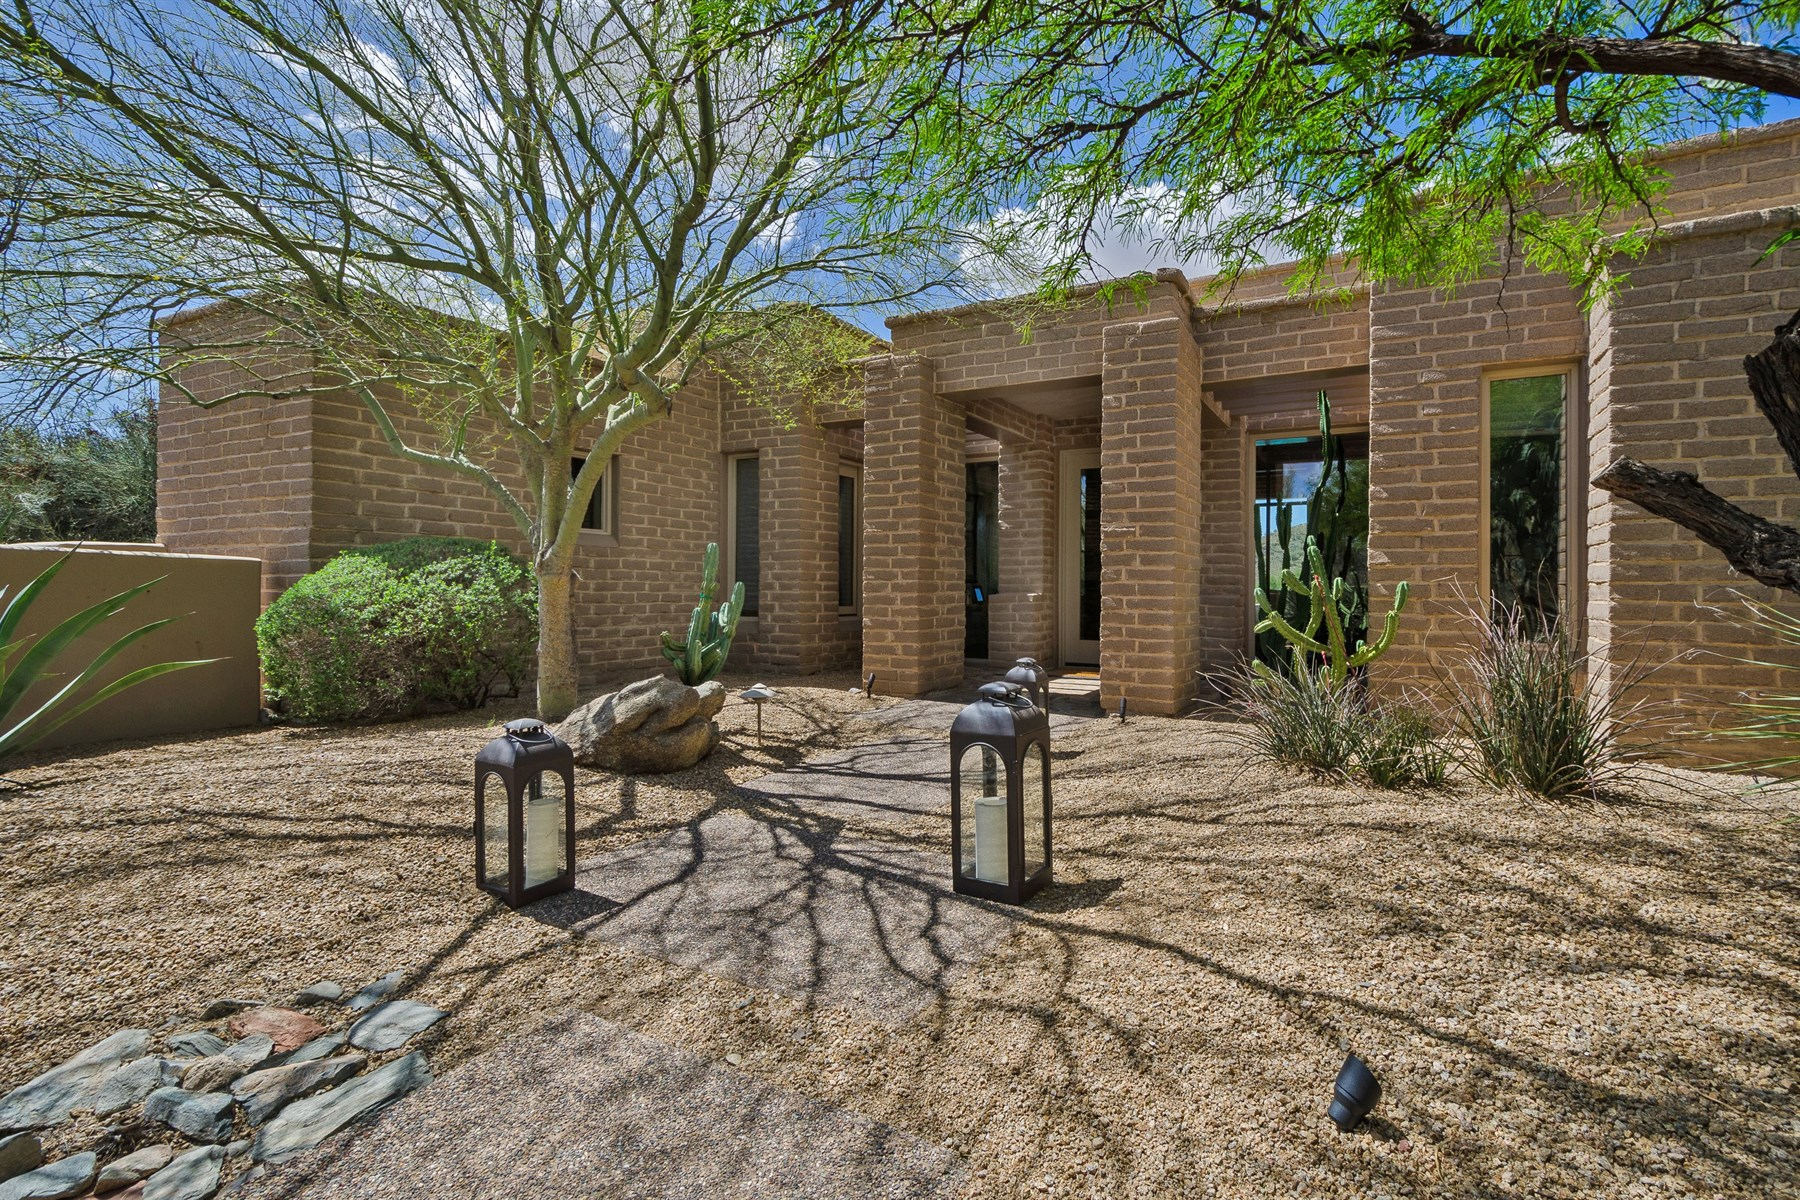 Single Family Home for Sale at Authentic Adobe home with spectacular mountain views 8400 E Dixileta Dr #110 Scottsdale, Arizona, 85266 United States